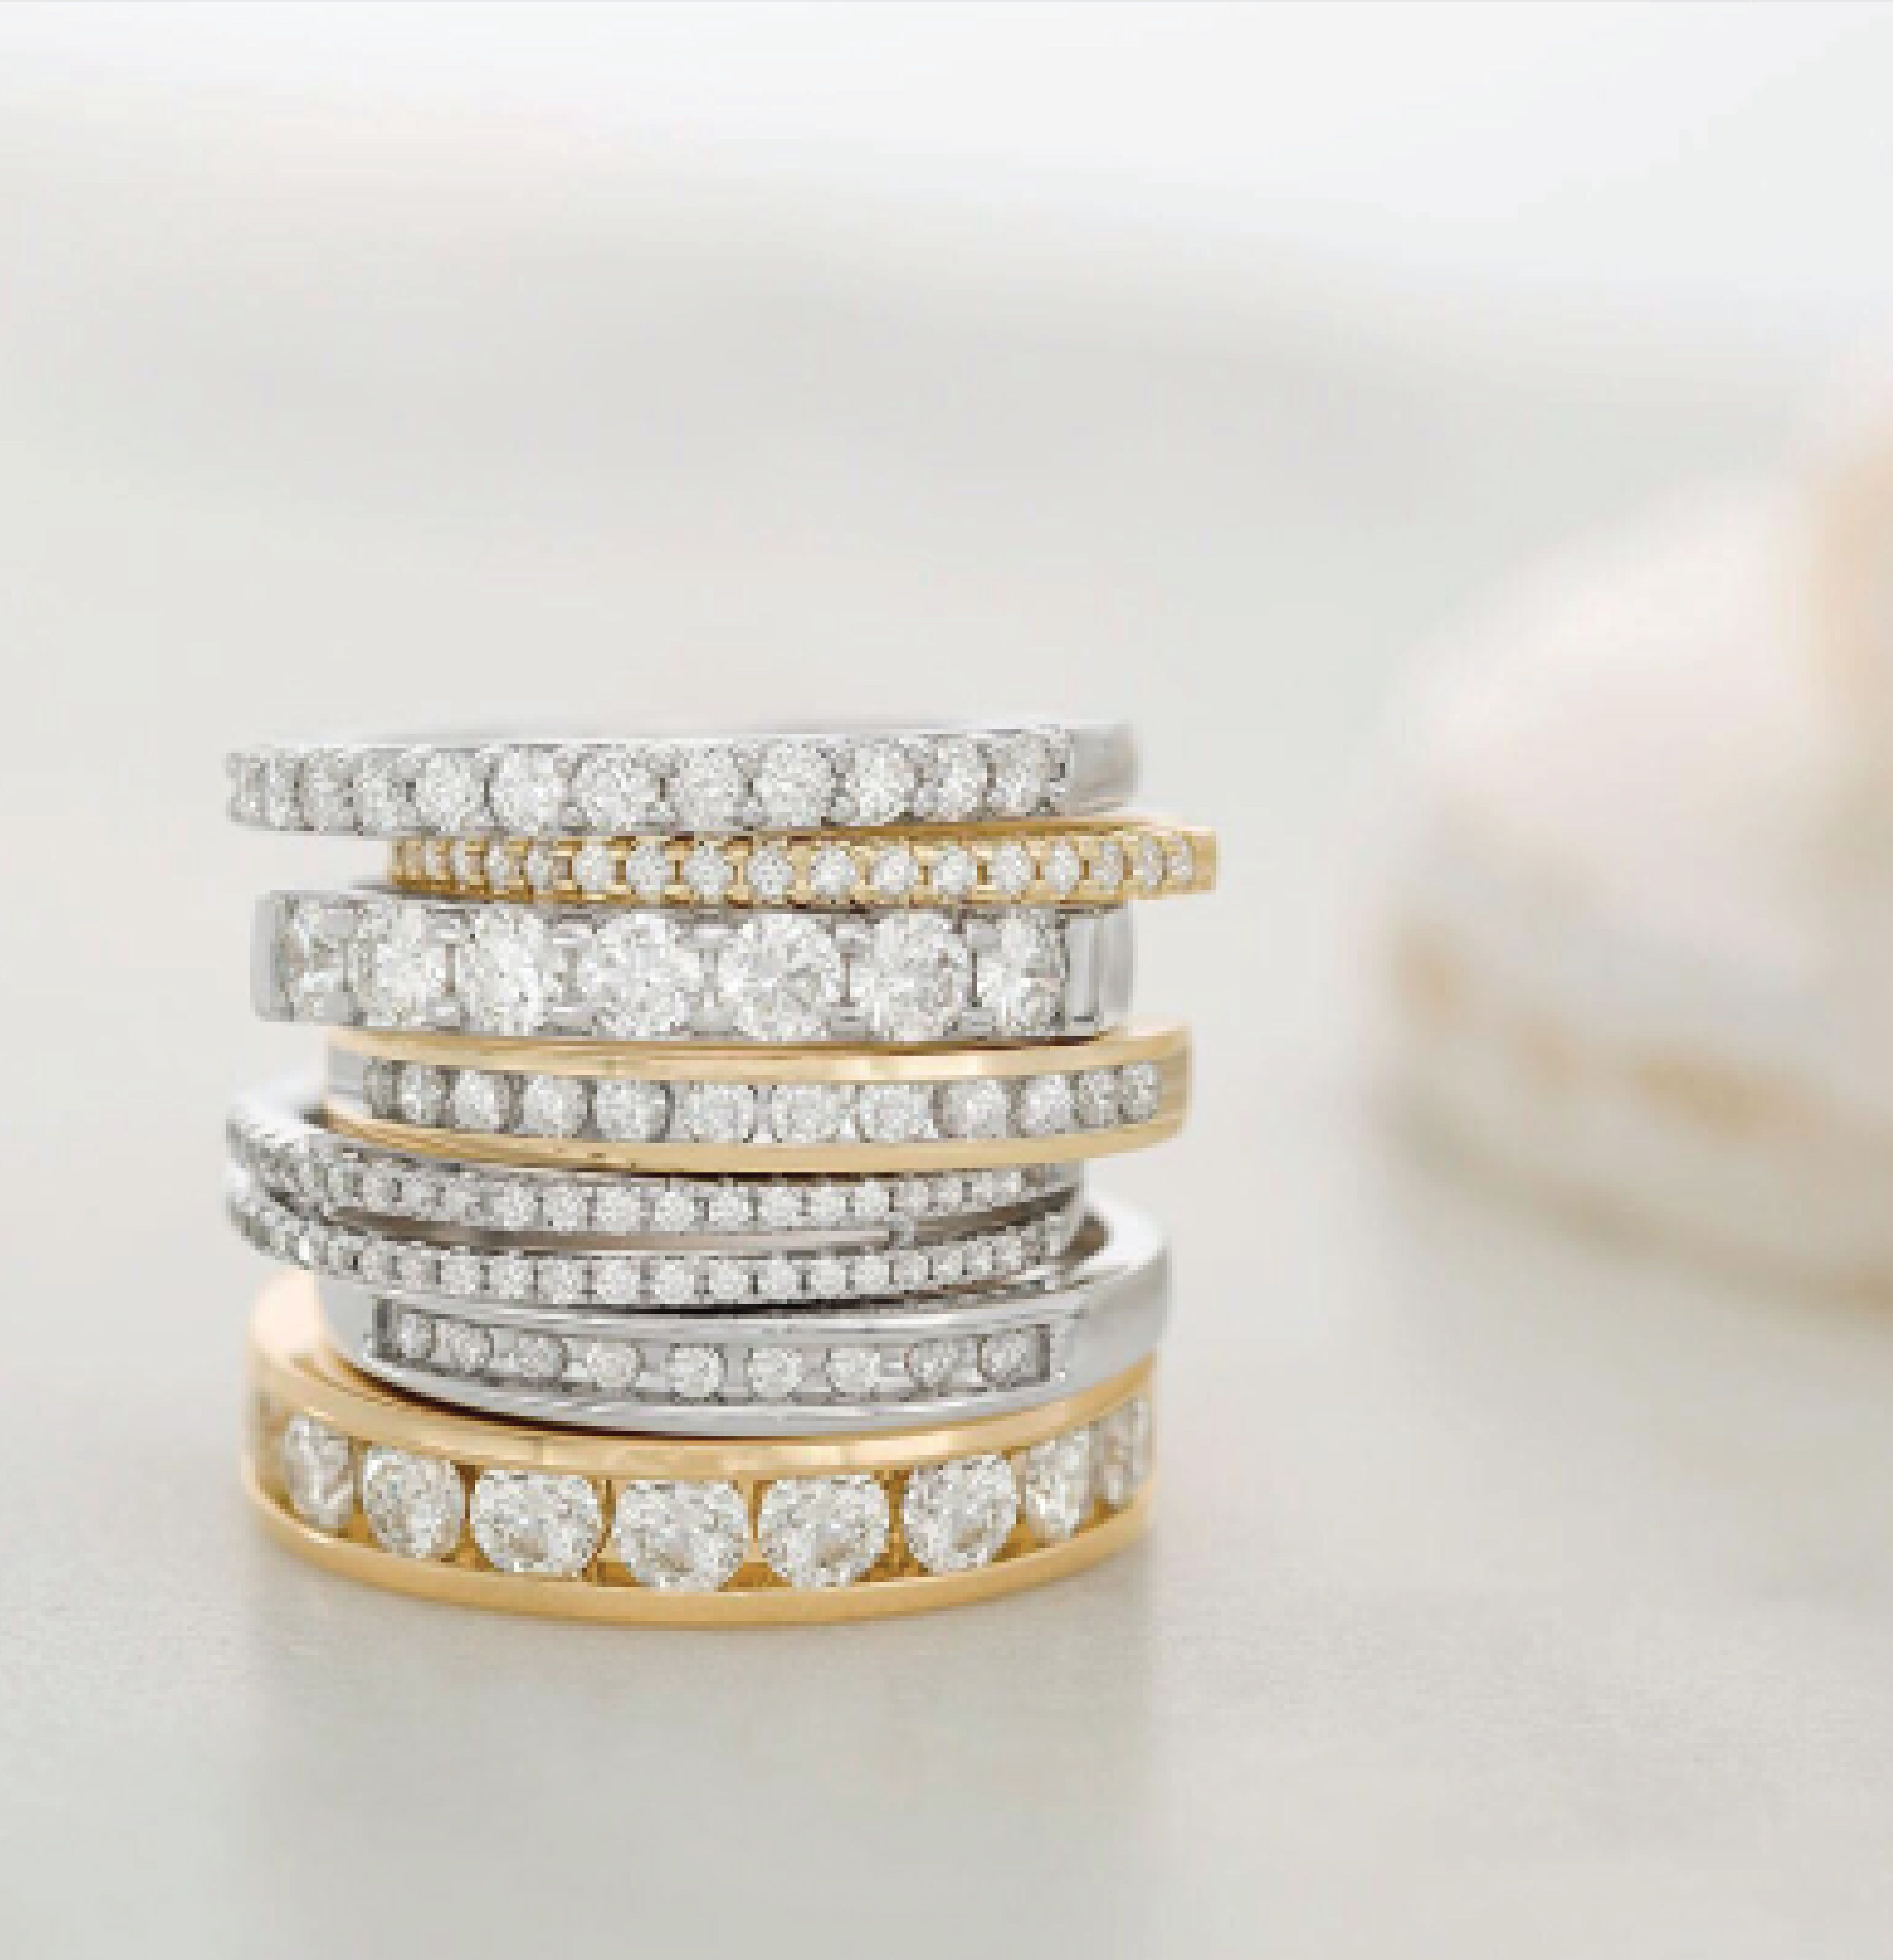 Stacked Lovezales Mixedmetals Yellowgold Whitegold Fashion Rings Pretty Rings Luxe Jewelry